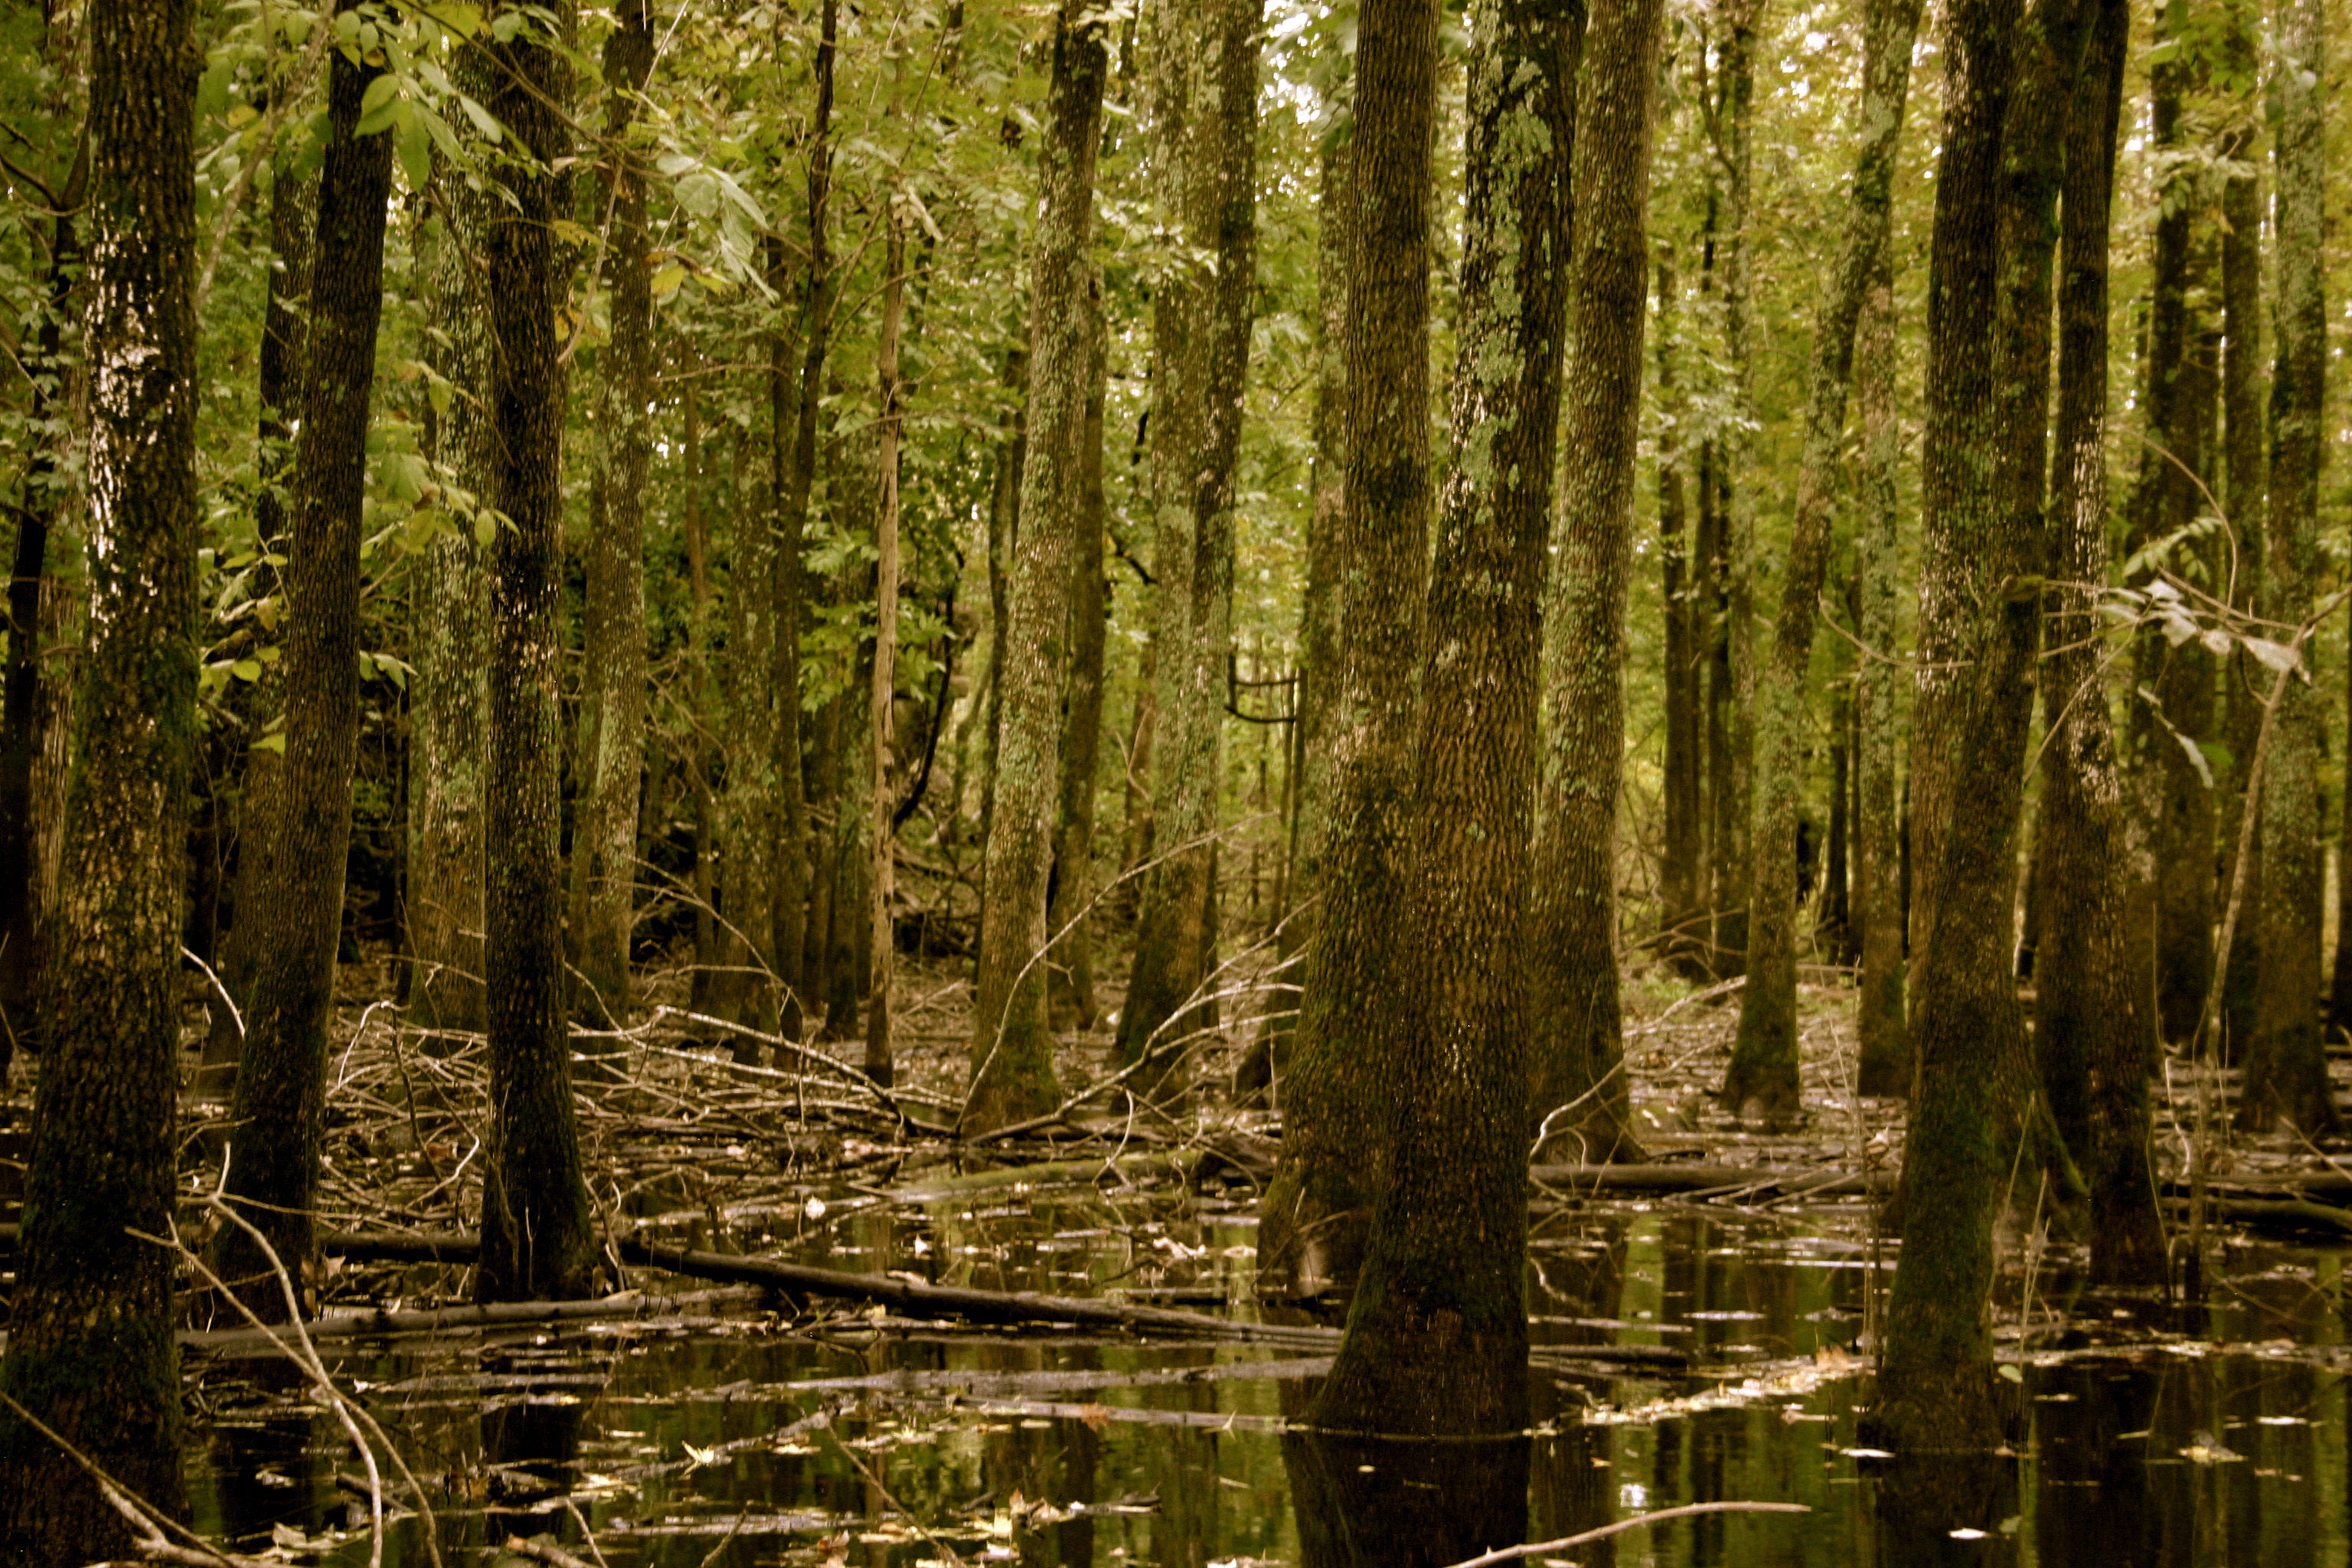 One of the Swamp Areas